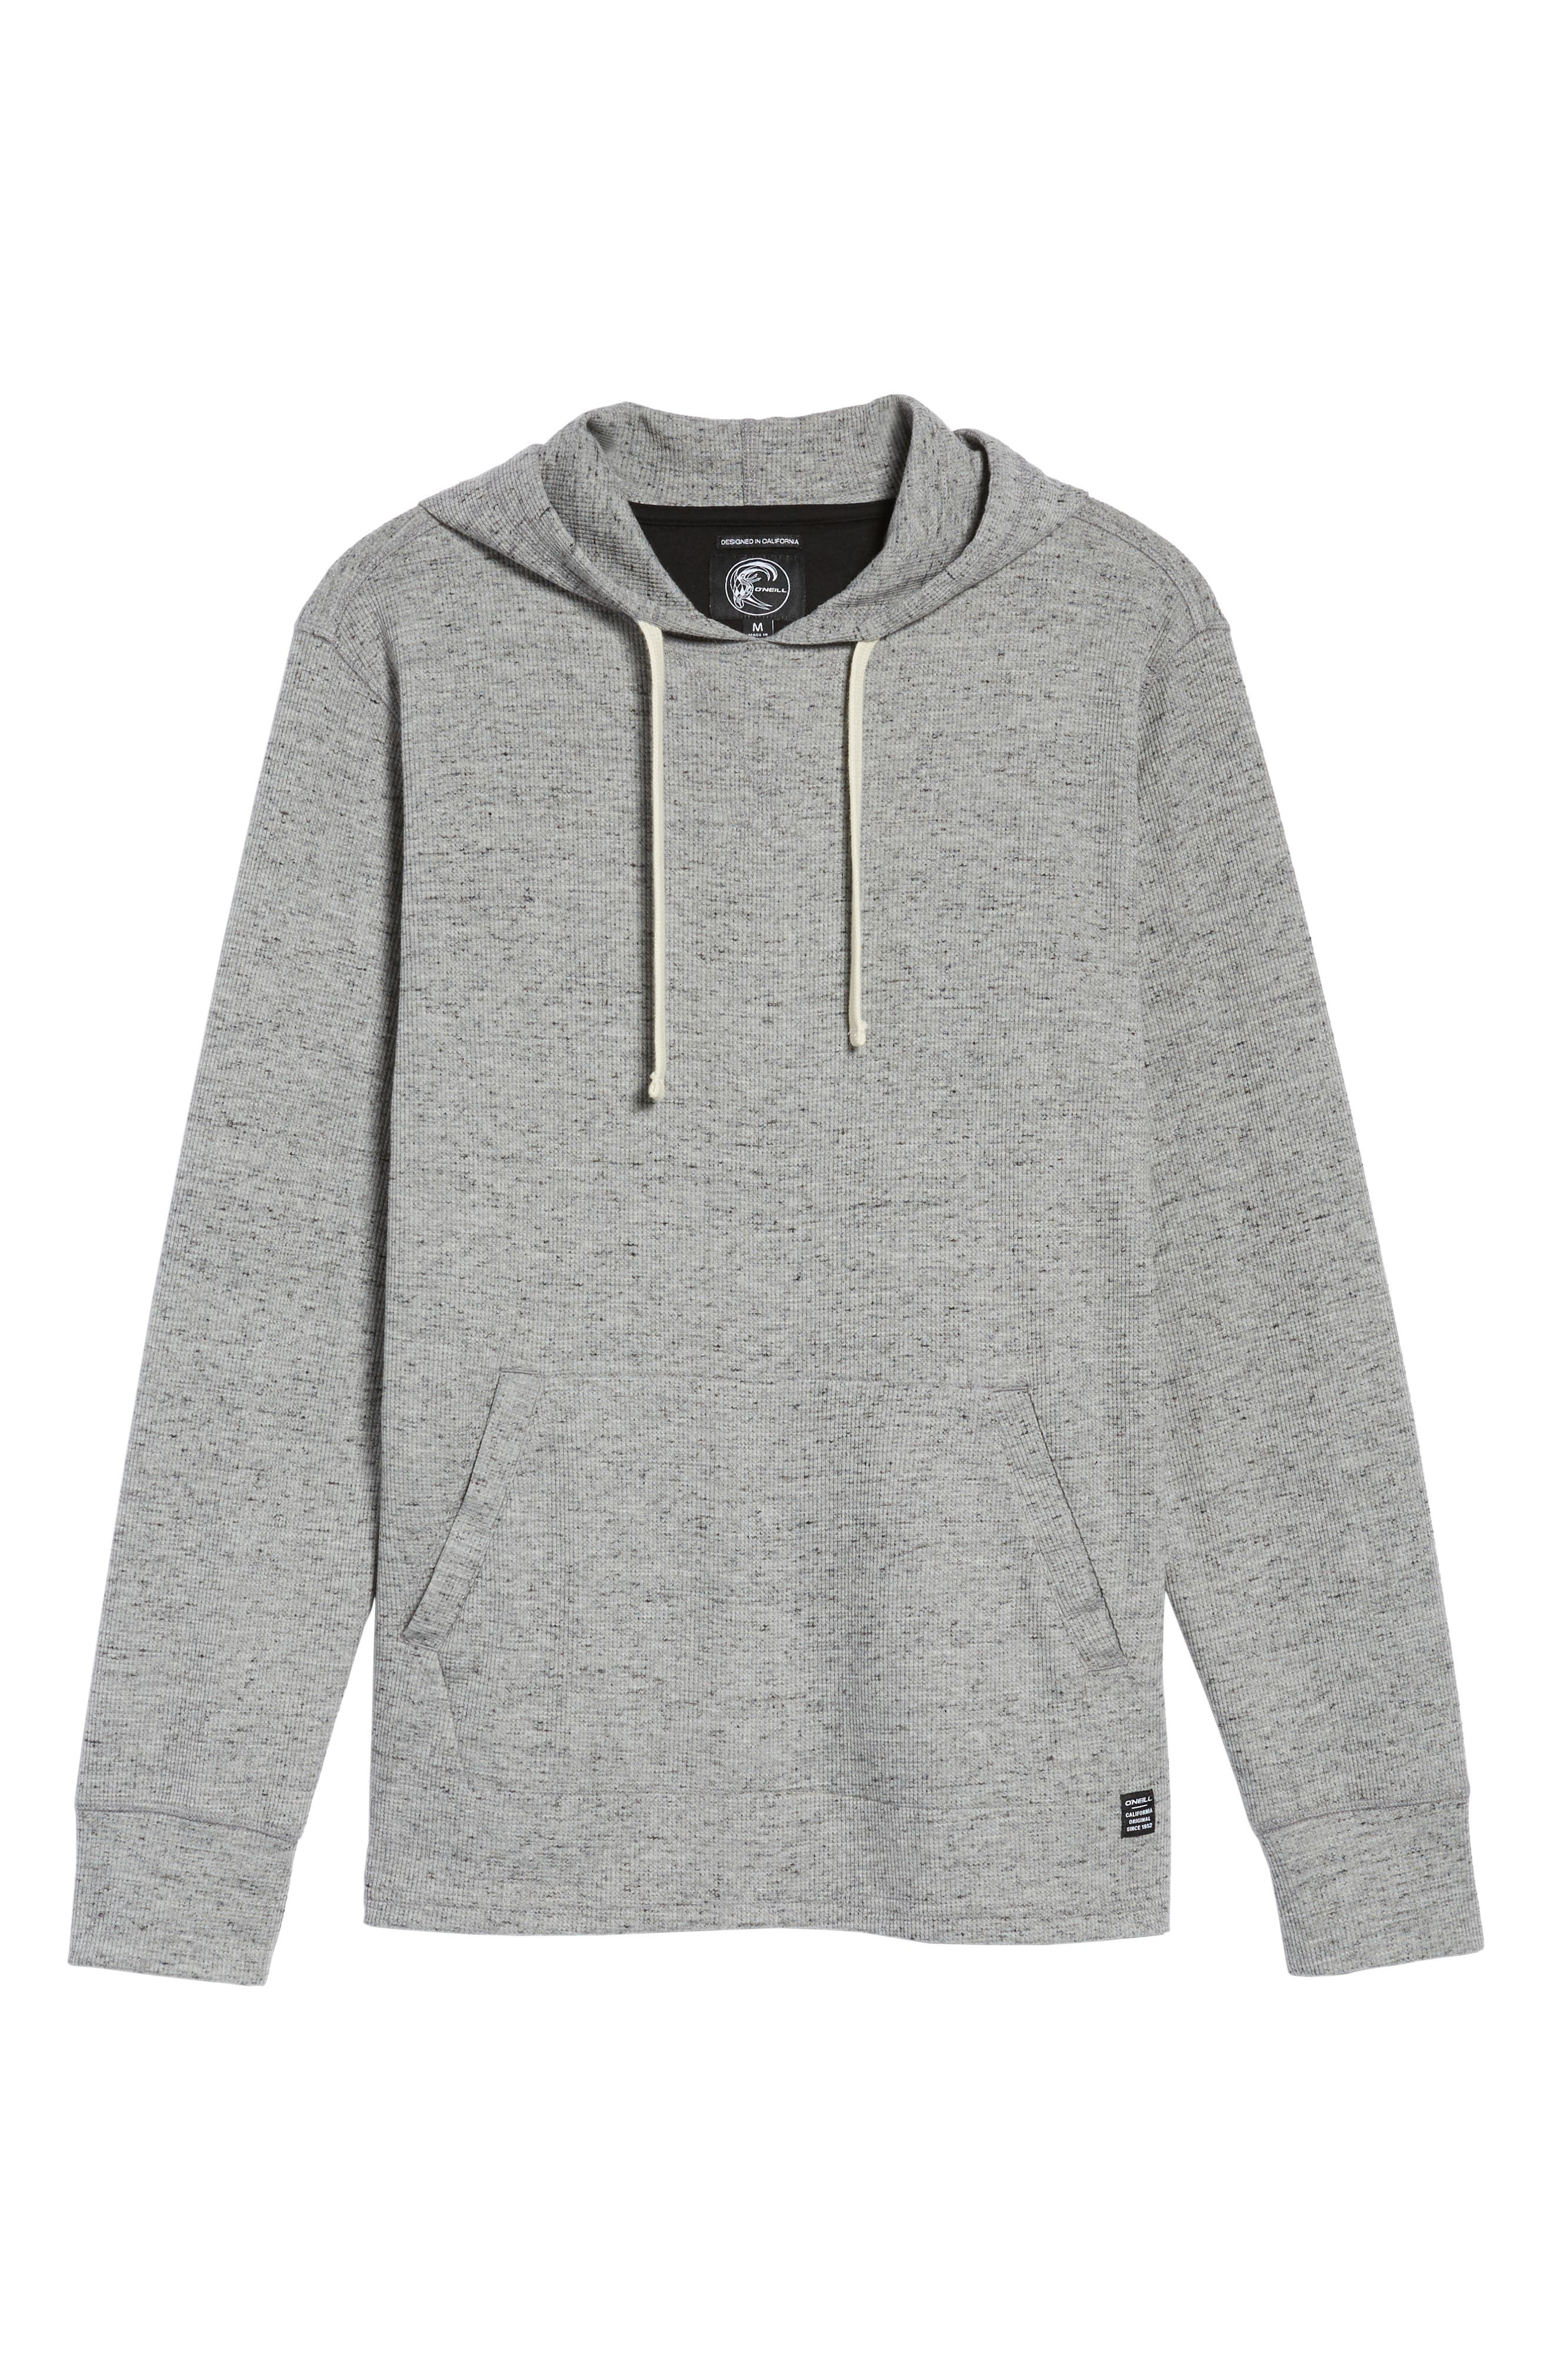 Boldin Thermal Pullover Hoodie,                             Alternate thumbnail 5, color,                             Light Grey